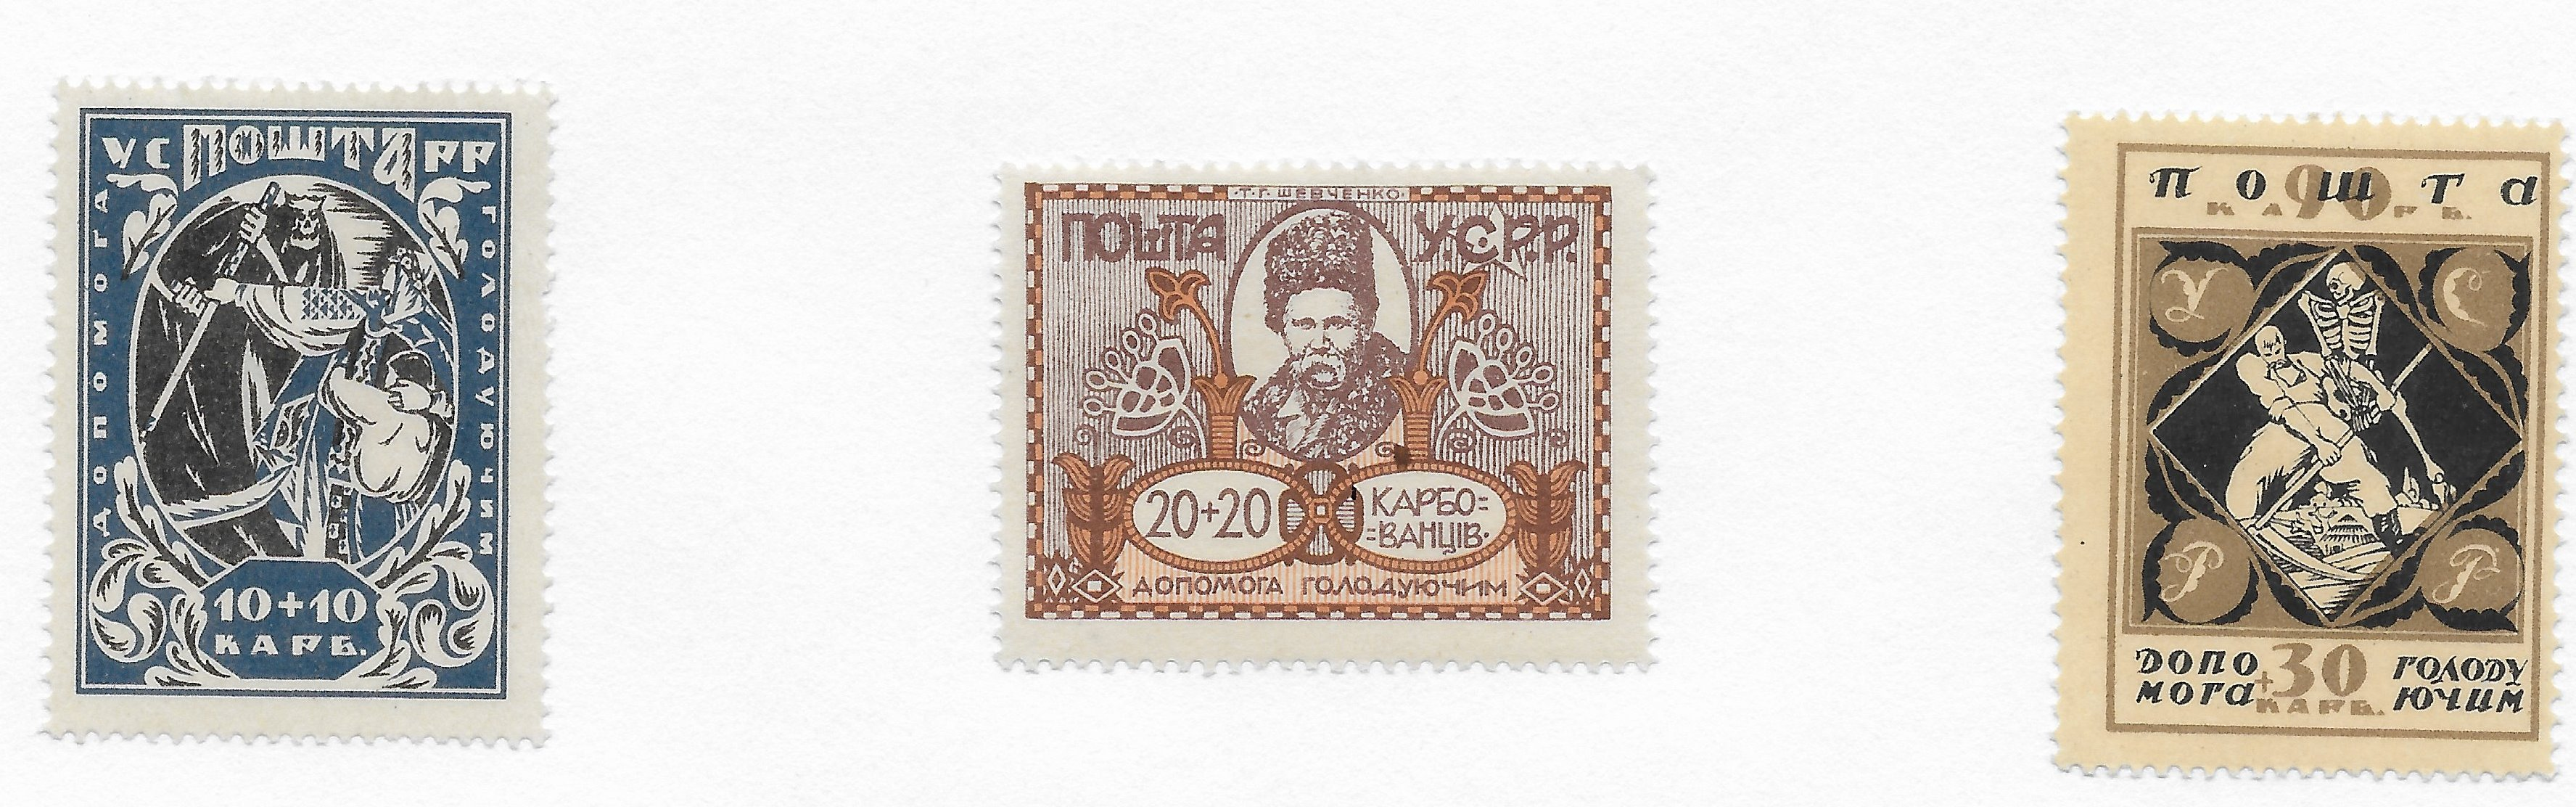 The brief independence of the Ukraine: expert stamp blog